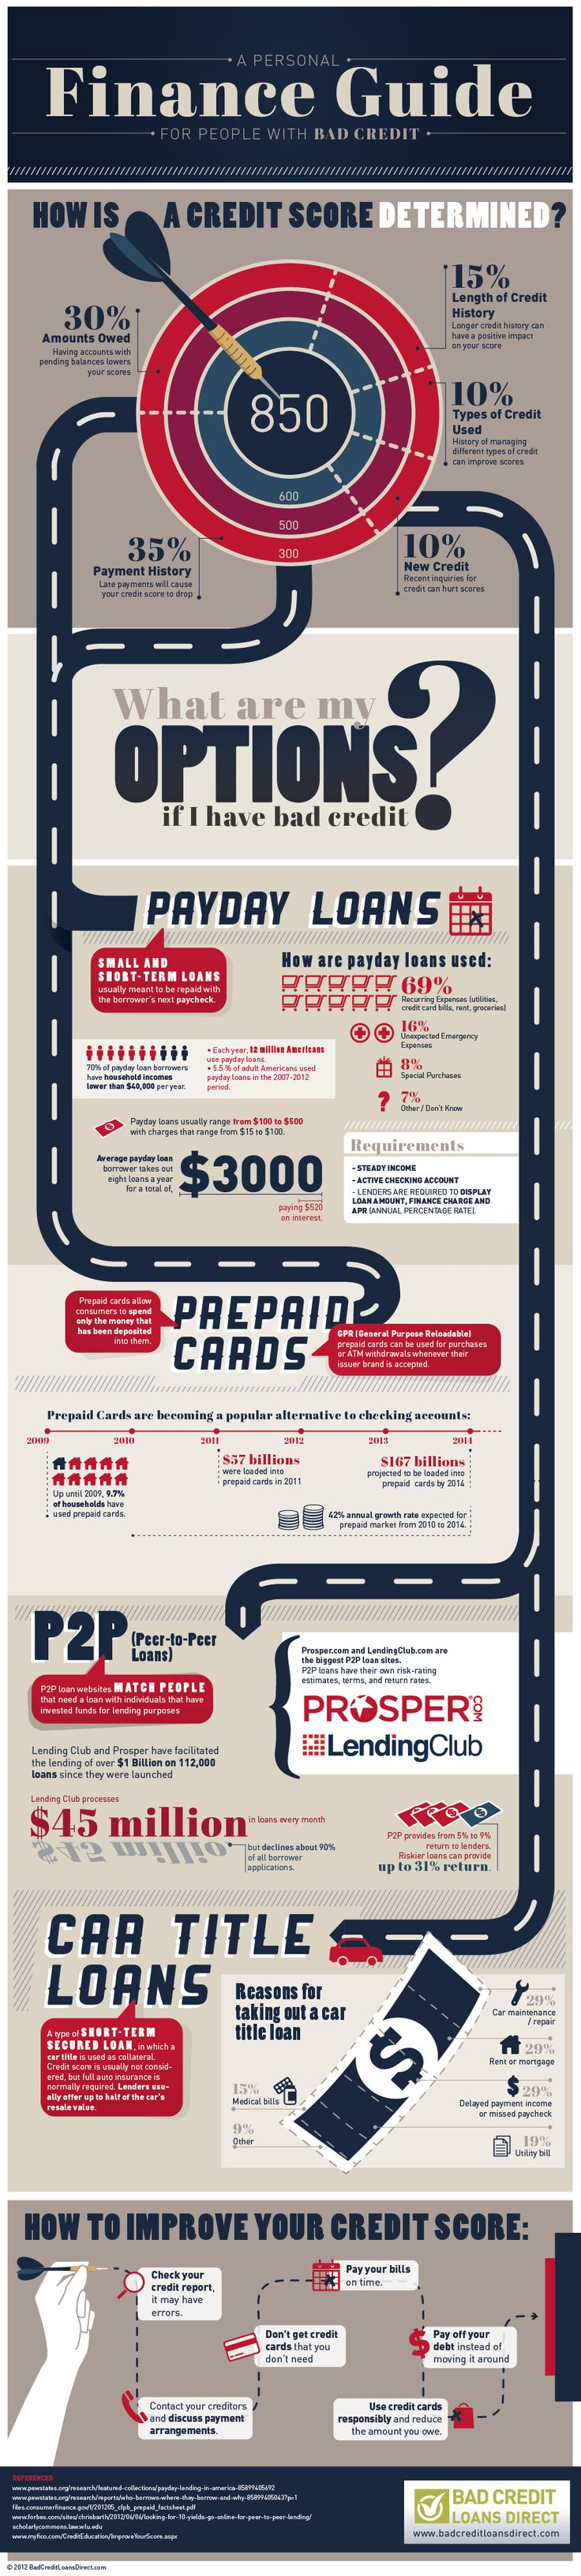 638 best credit score images on pinterest coupons for groceries a good credit history can offer an extensive variety of loans at special rates to purchase reheart Image collections